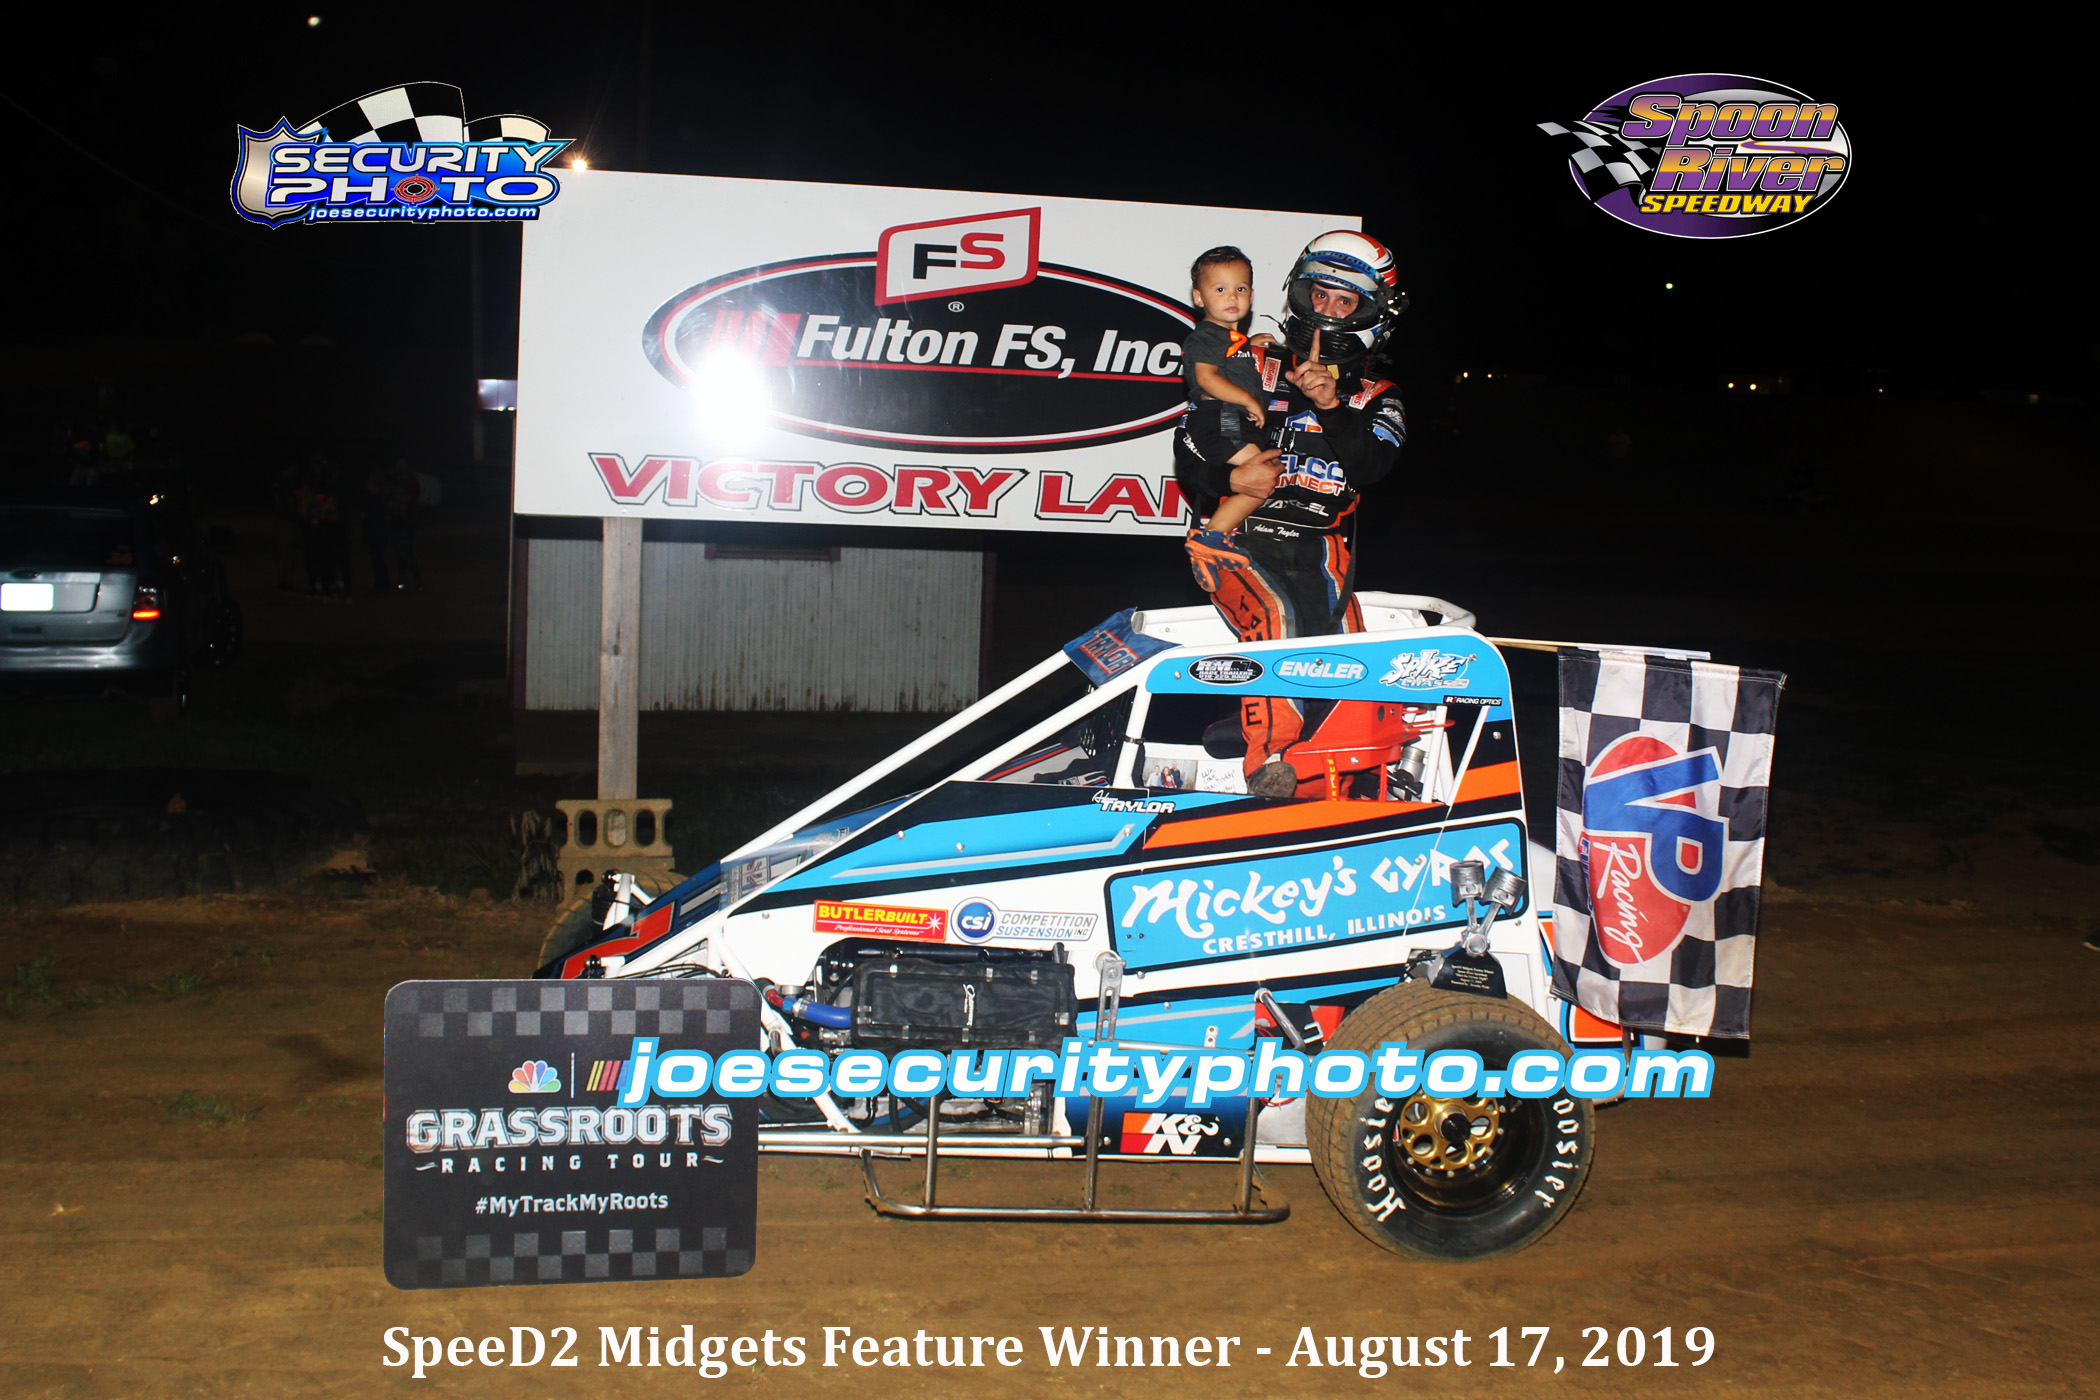 Speed2 Midgets feature winner 7699 copy